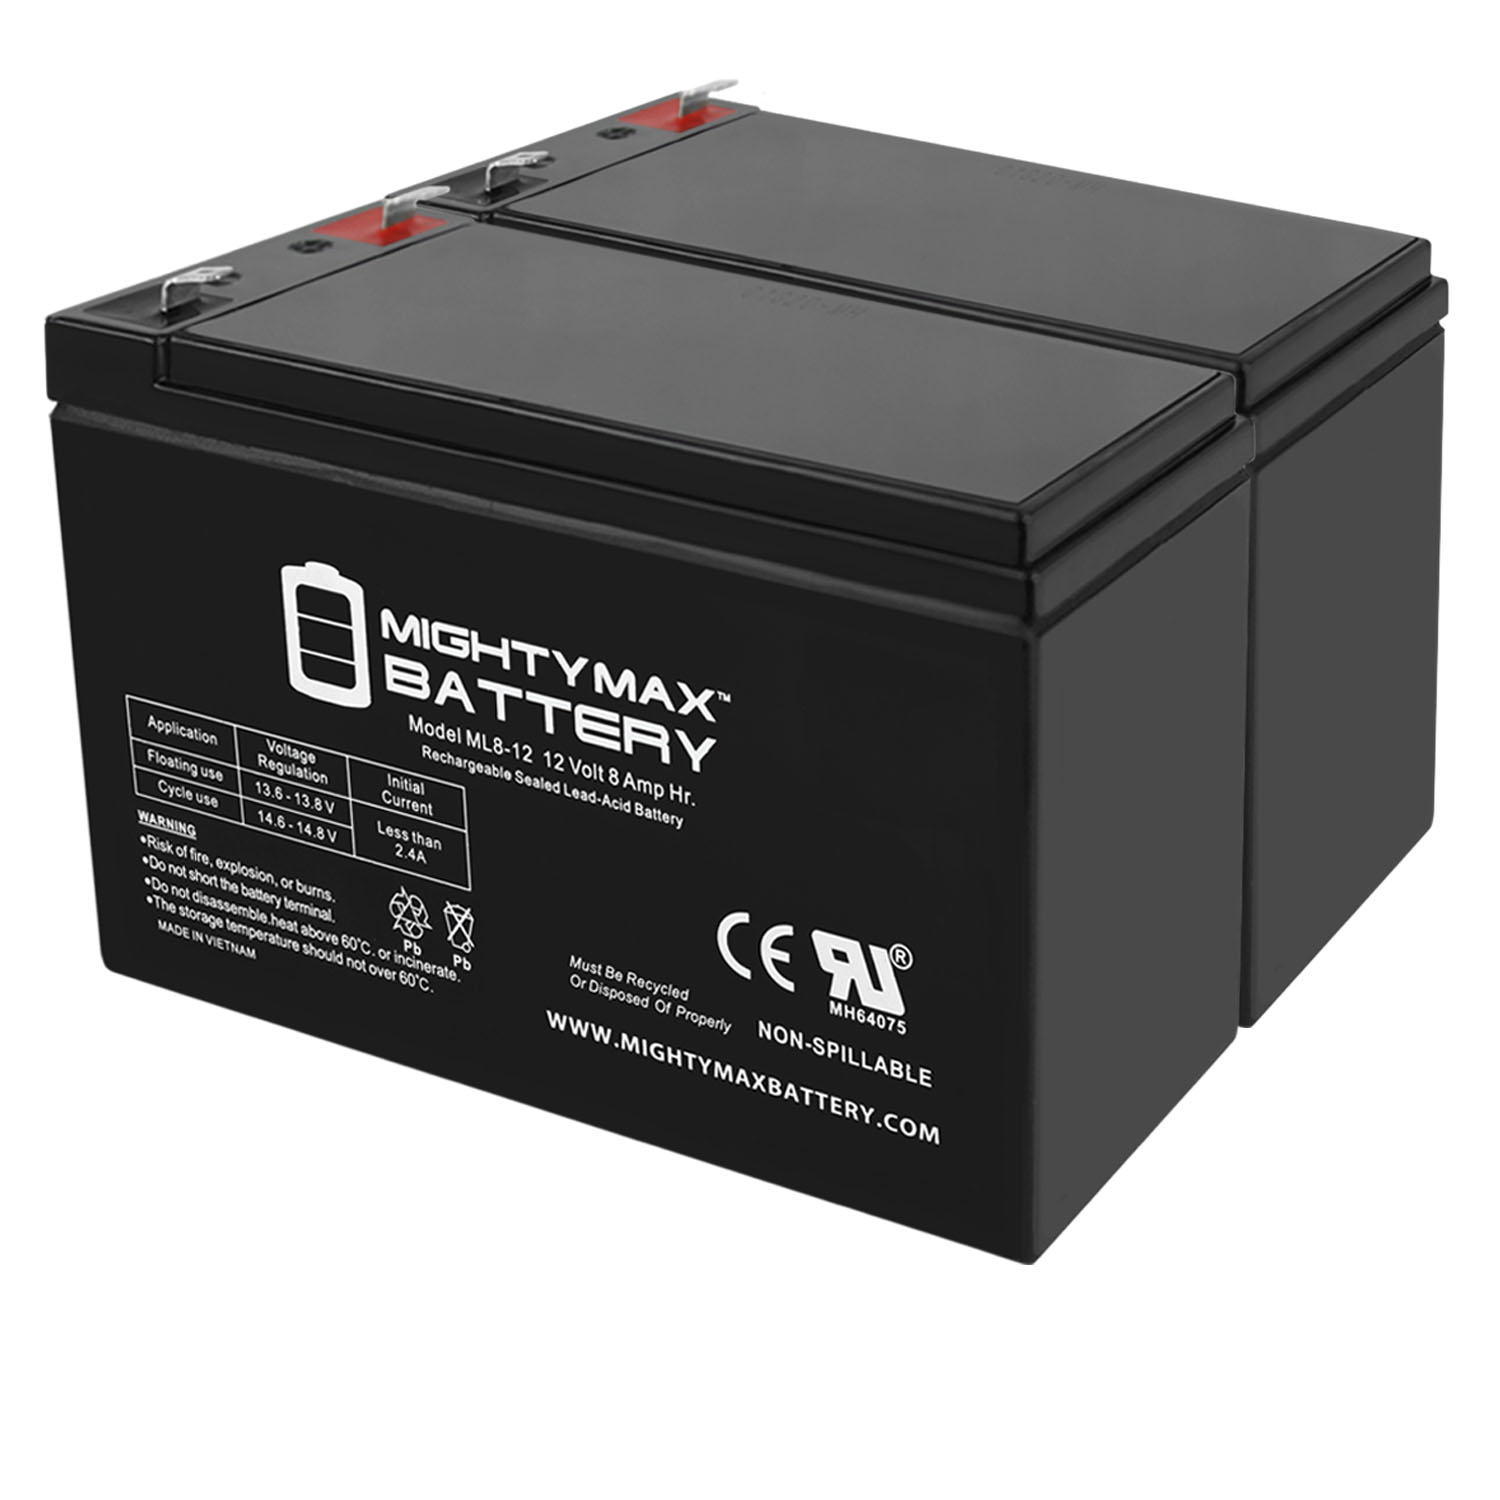 ML8-12 - 12V 8AH Replacement Battery for APC Back-UPS ES USB 650 - 2 Pack